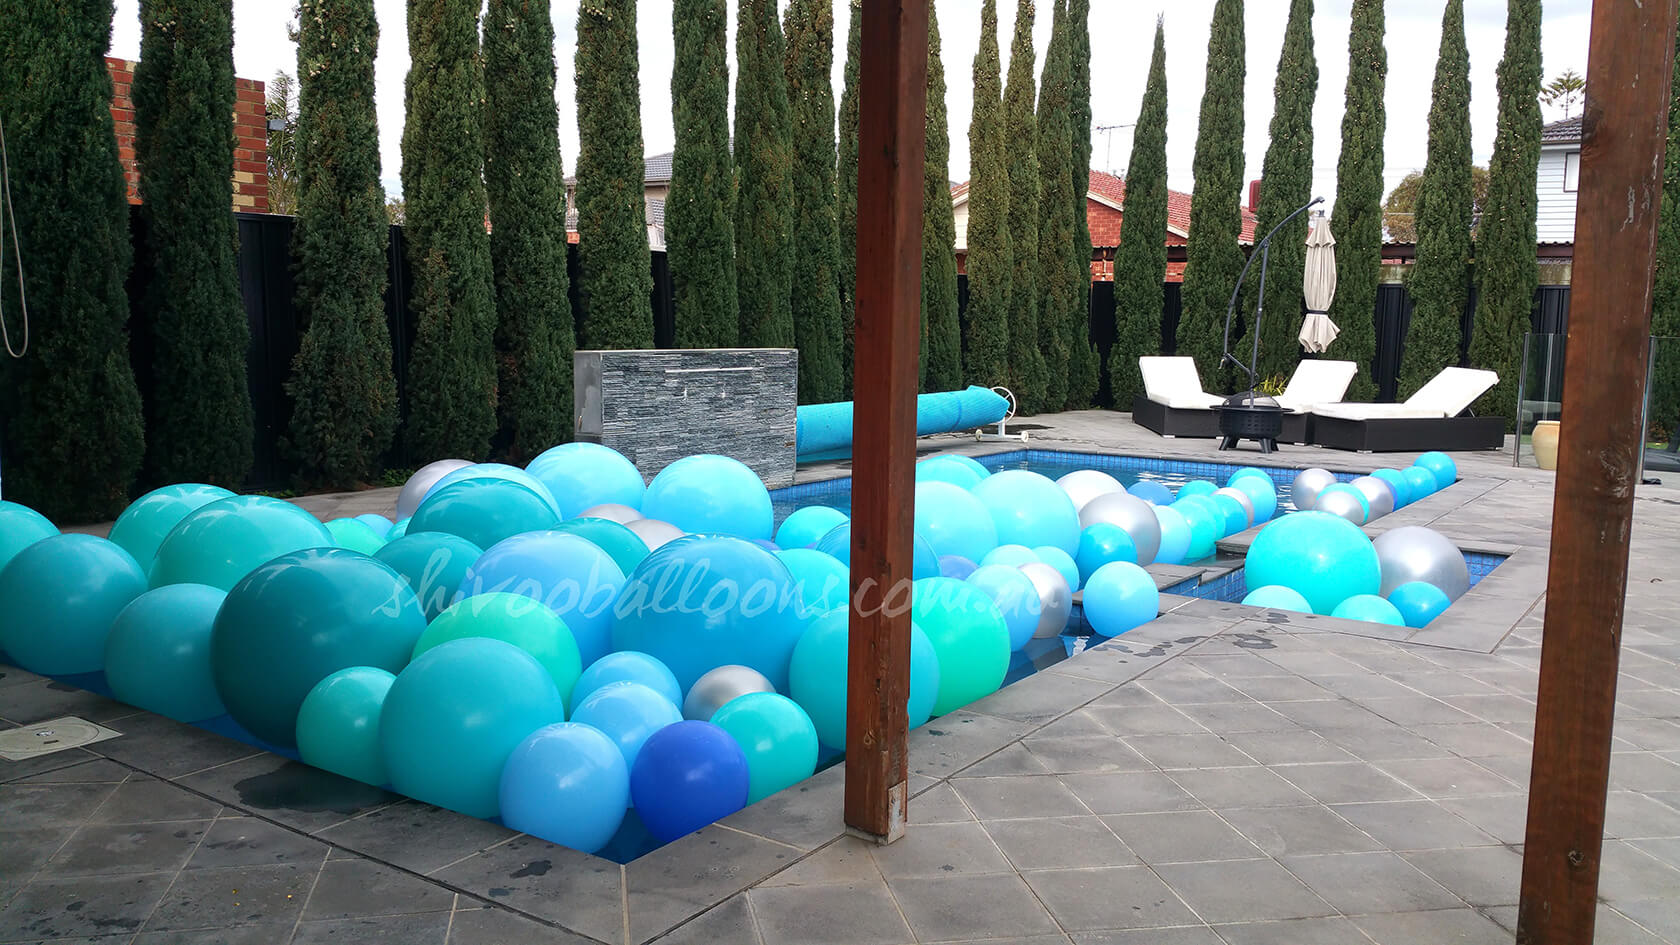 See Our Events! - image CE-66 on https://shivooballoons.com.au